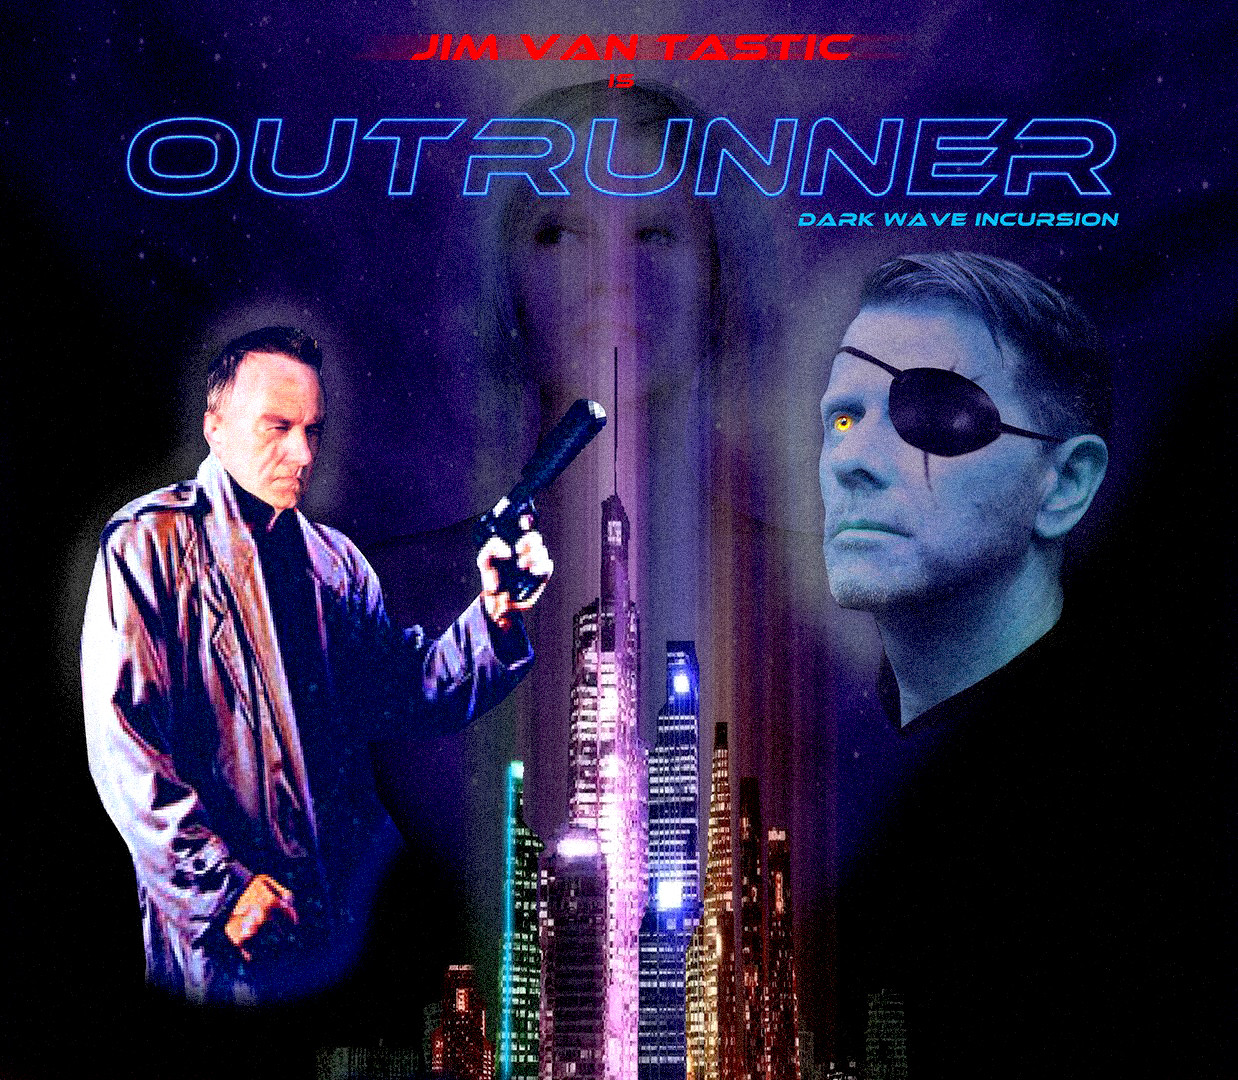 Outrunner: DarkWave Incursion